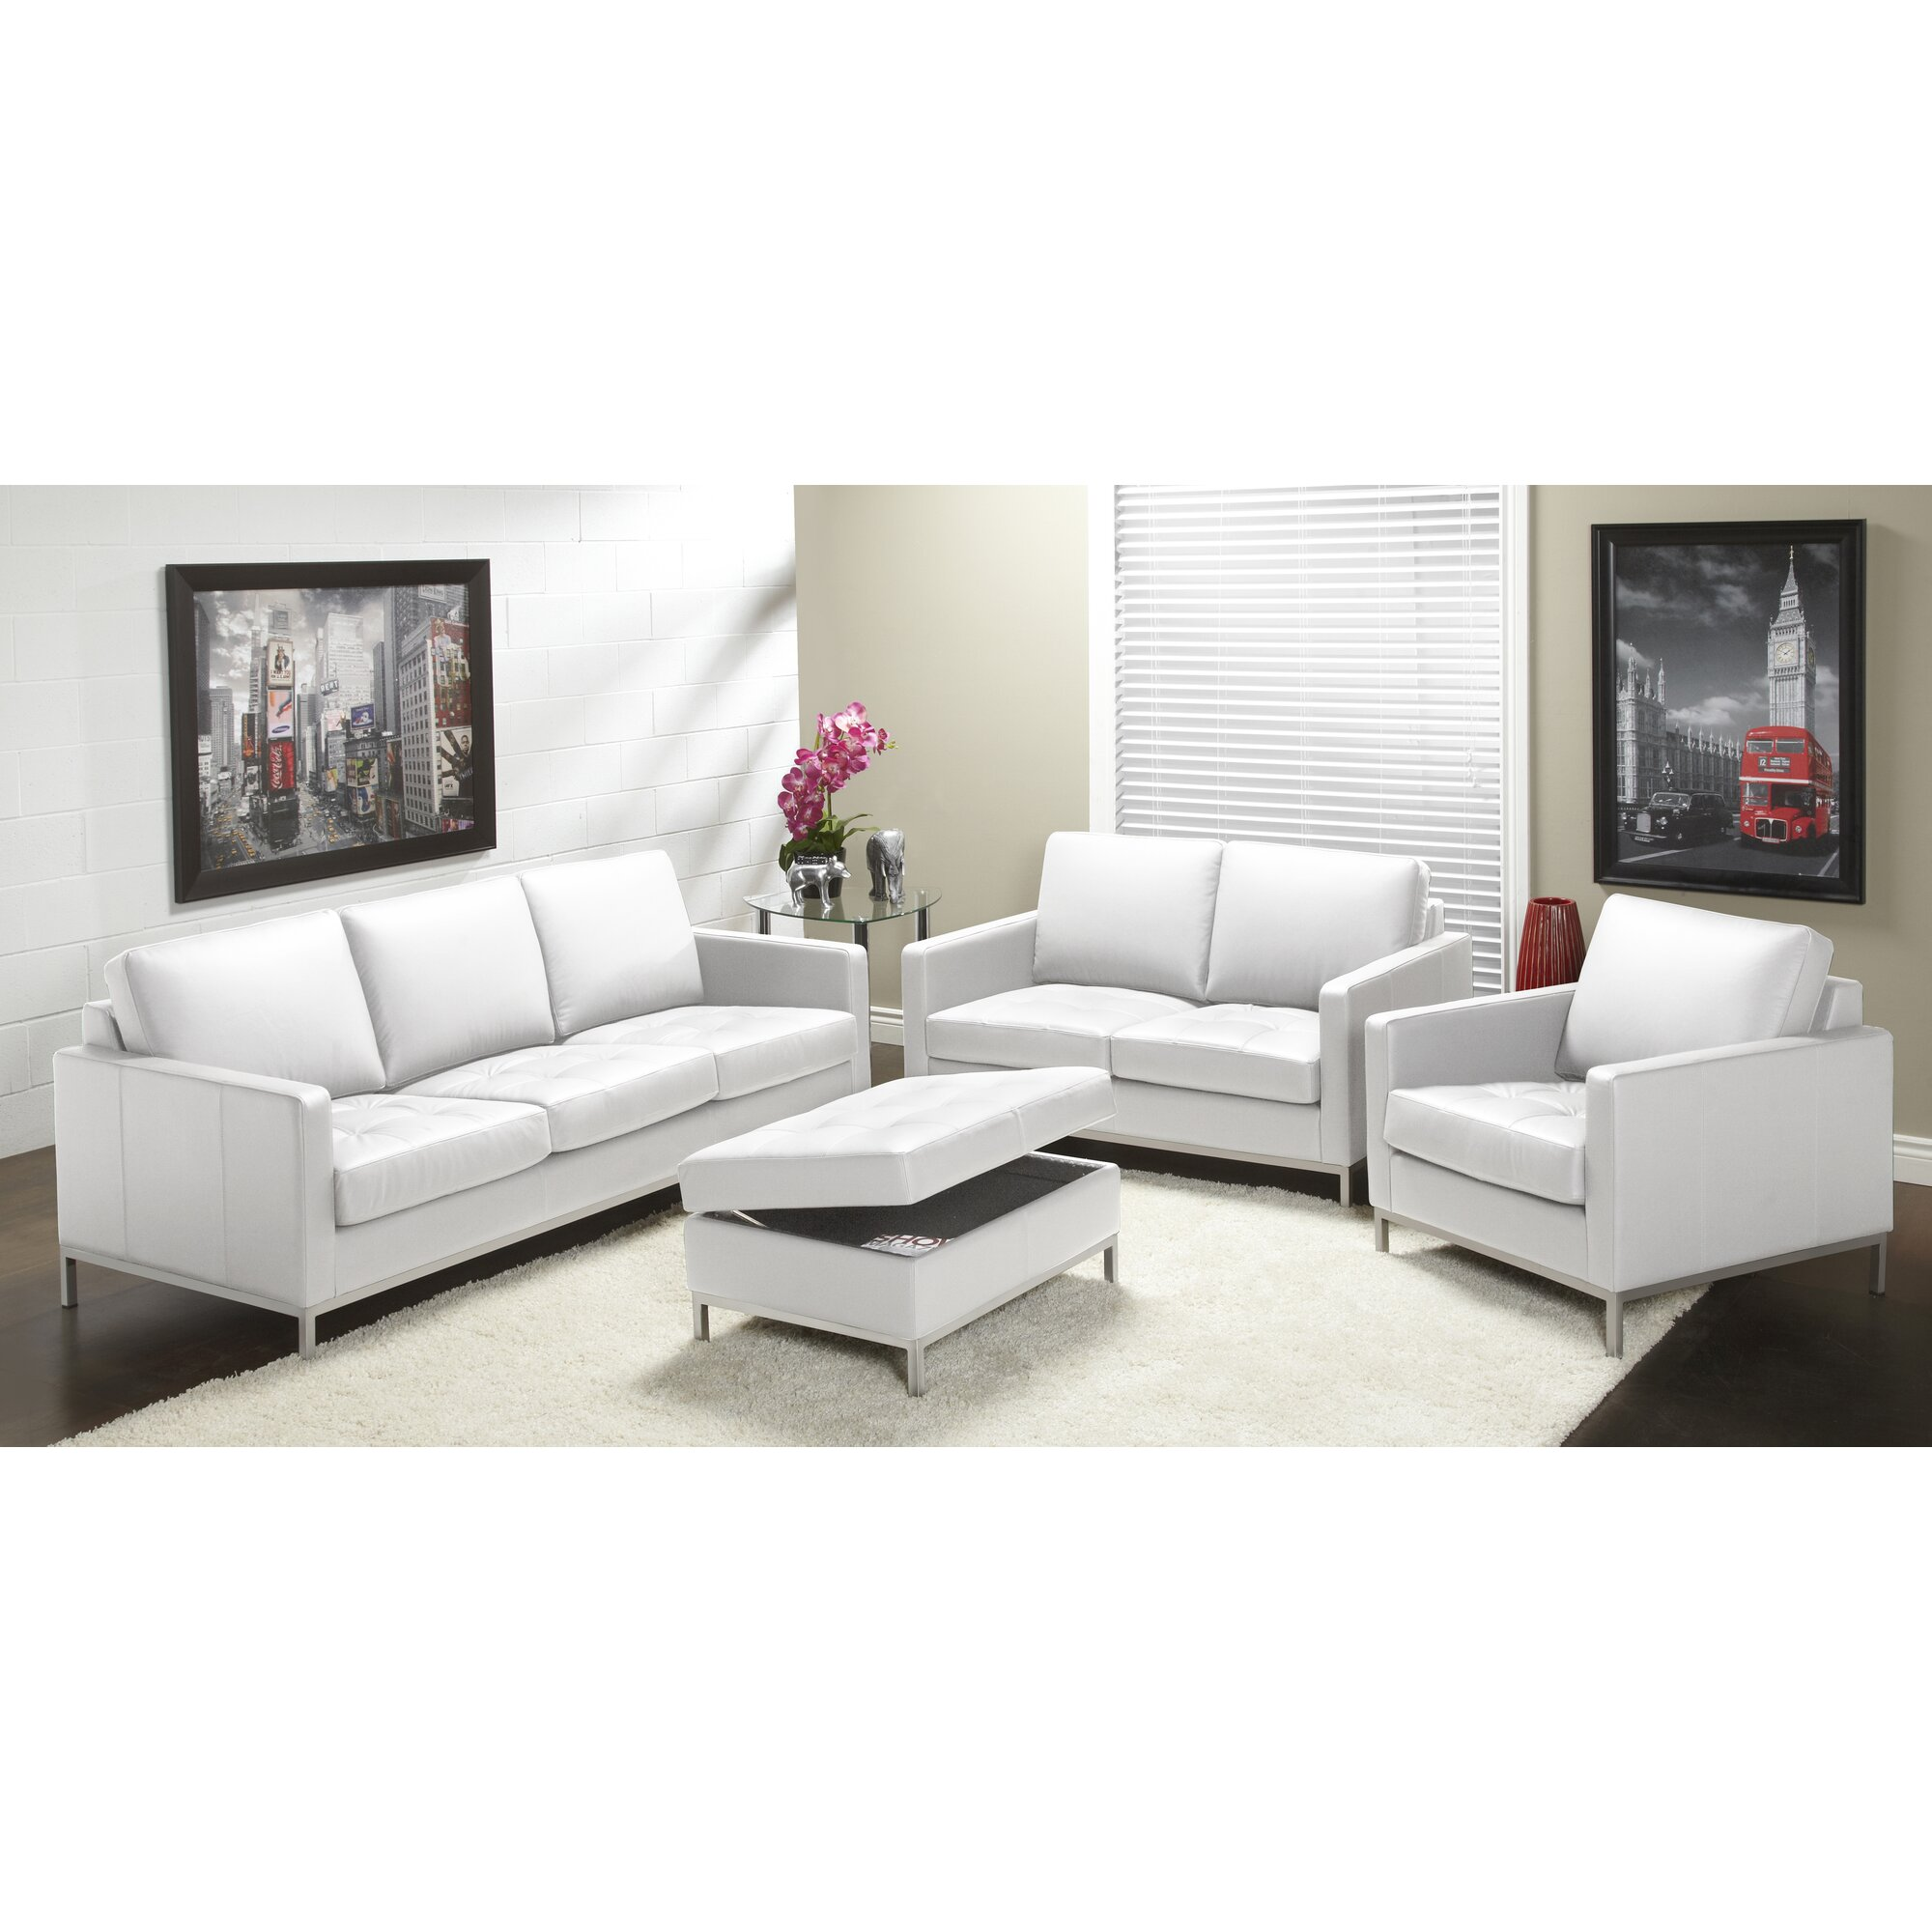 Lind Furniture 244 Series Top Grain Leather Living Room Collection Reviews Wayfair